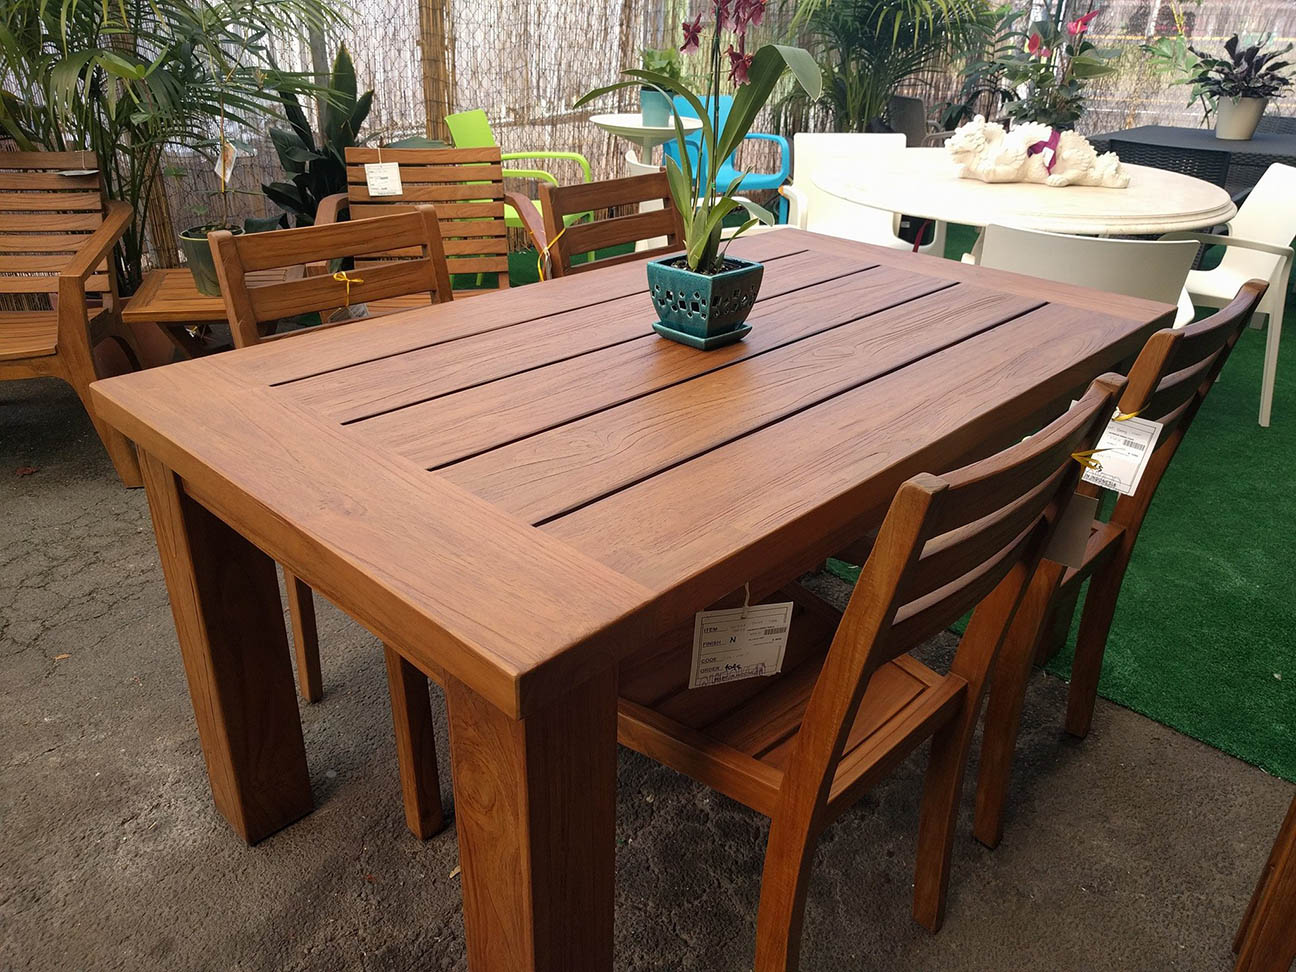 New Teak and Mango Furniture